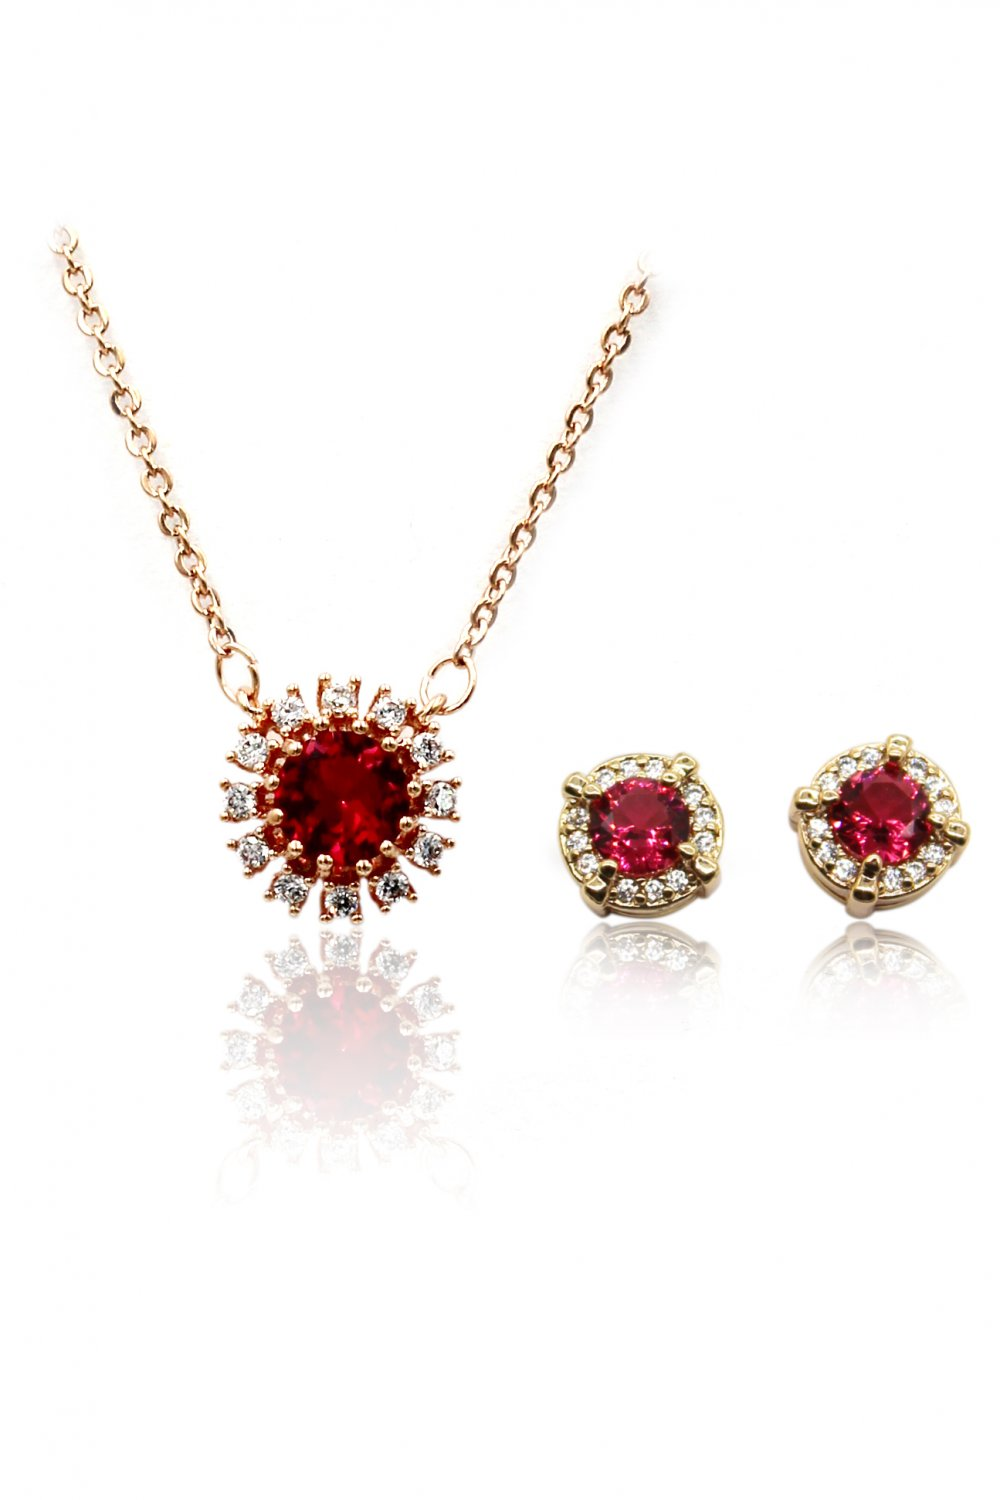 Simple red crystal necklace earrings gold set